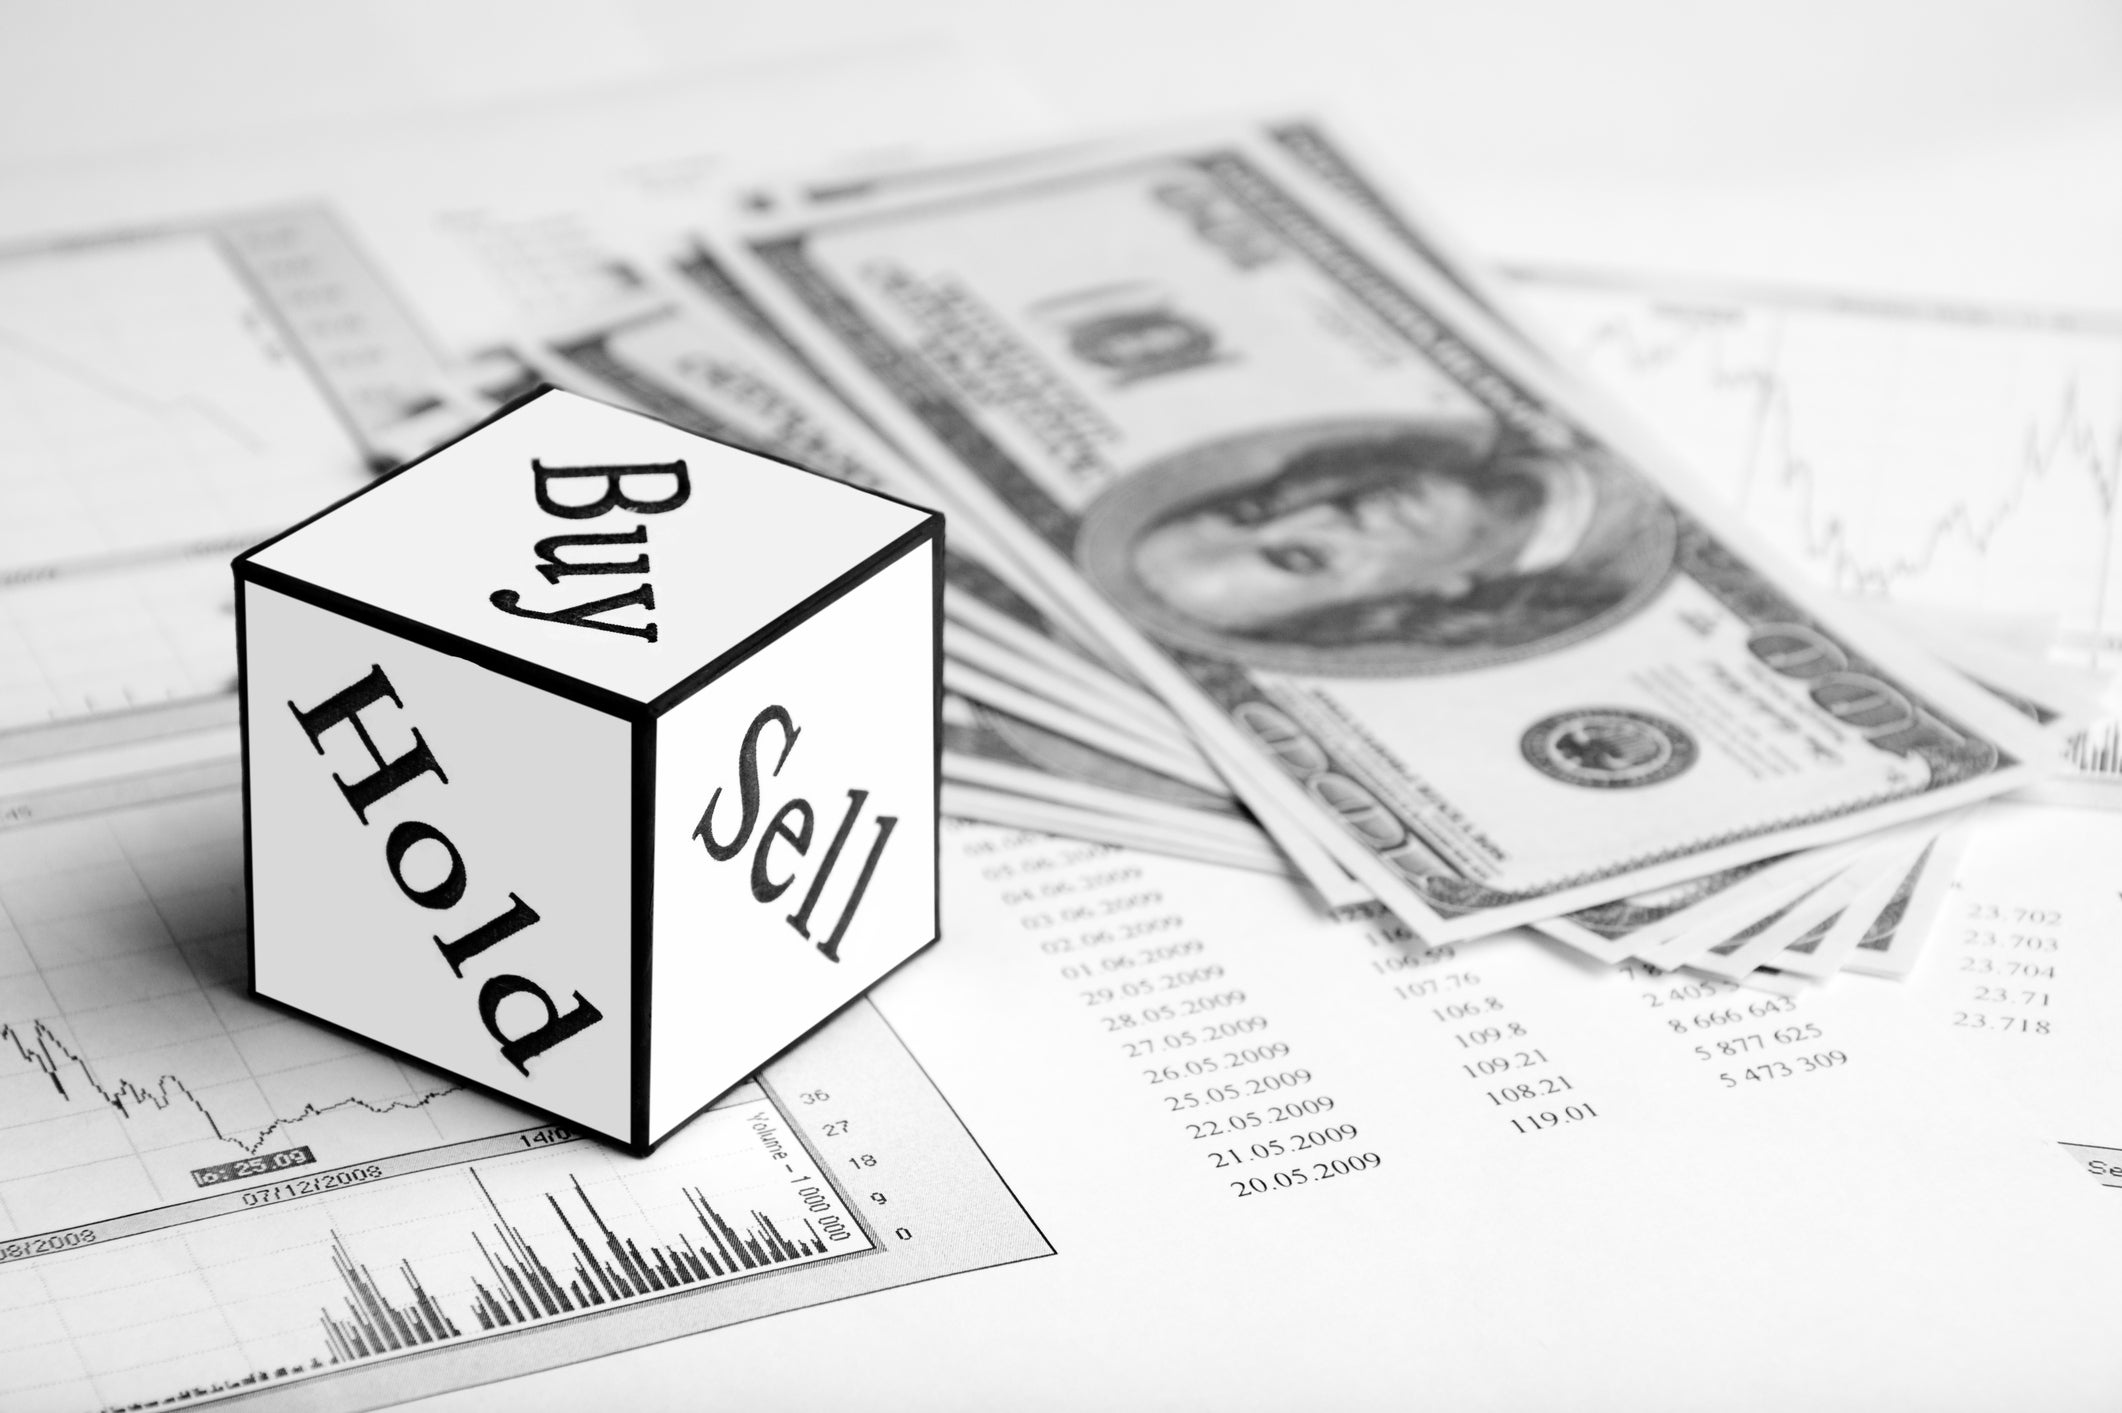 """A """"buy, sell, hold"""" die with money lying on a balance sheet."""